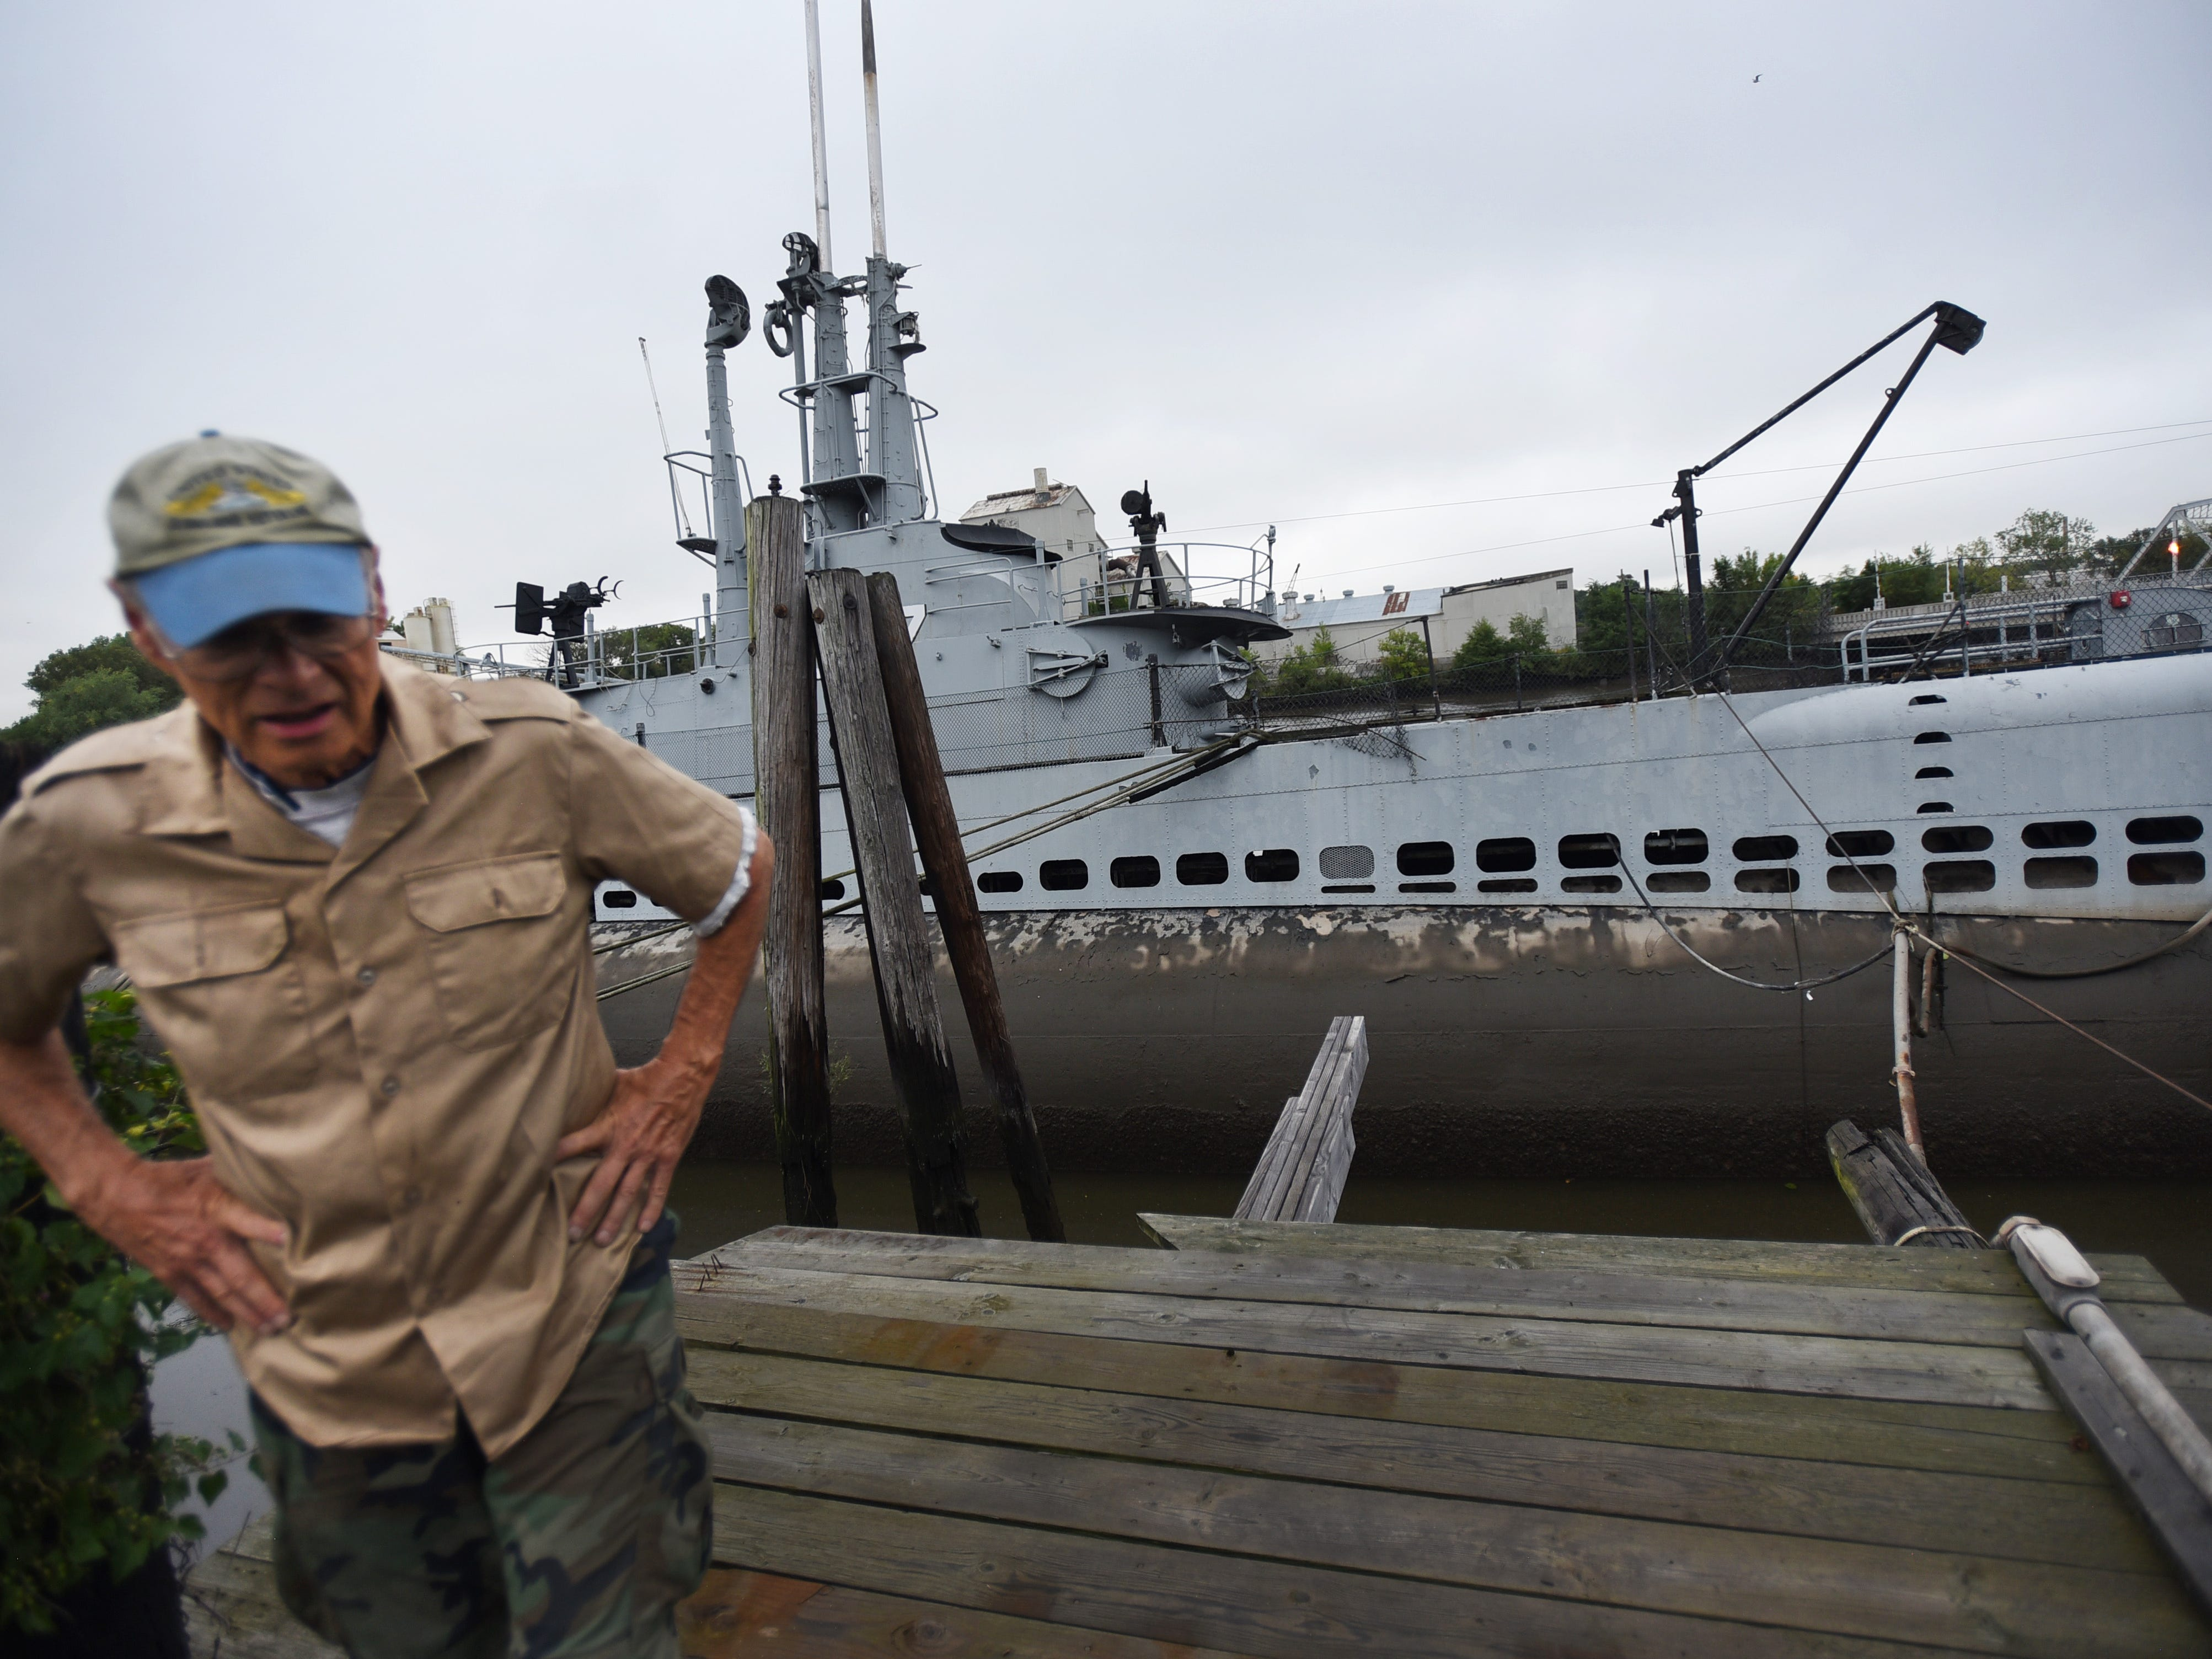 Jack Brown, Trustee of Submarine Memorial Association stands in from of the 1945 USS Ling SS297, 312 foot long submarine that will remain at the site of the NJ Naval Museum in Hackensack on 09/12/18.